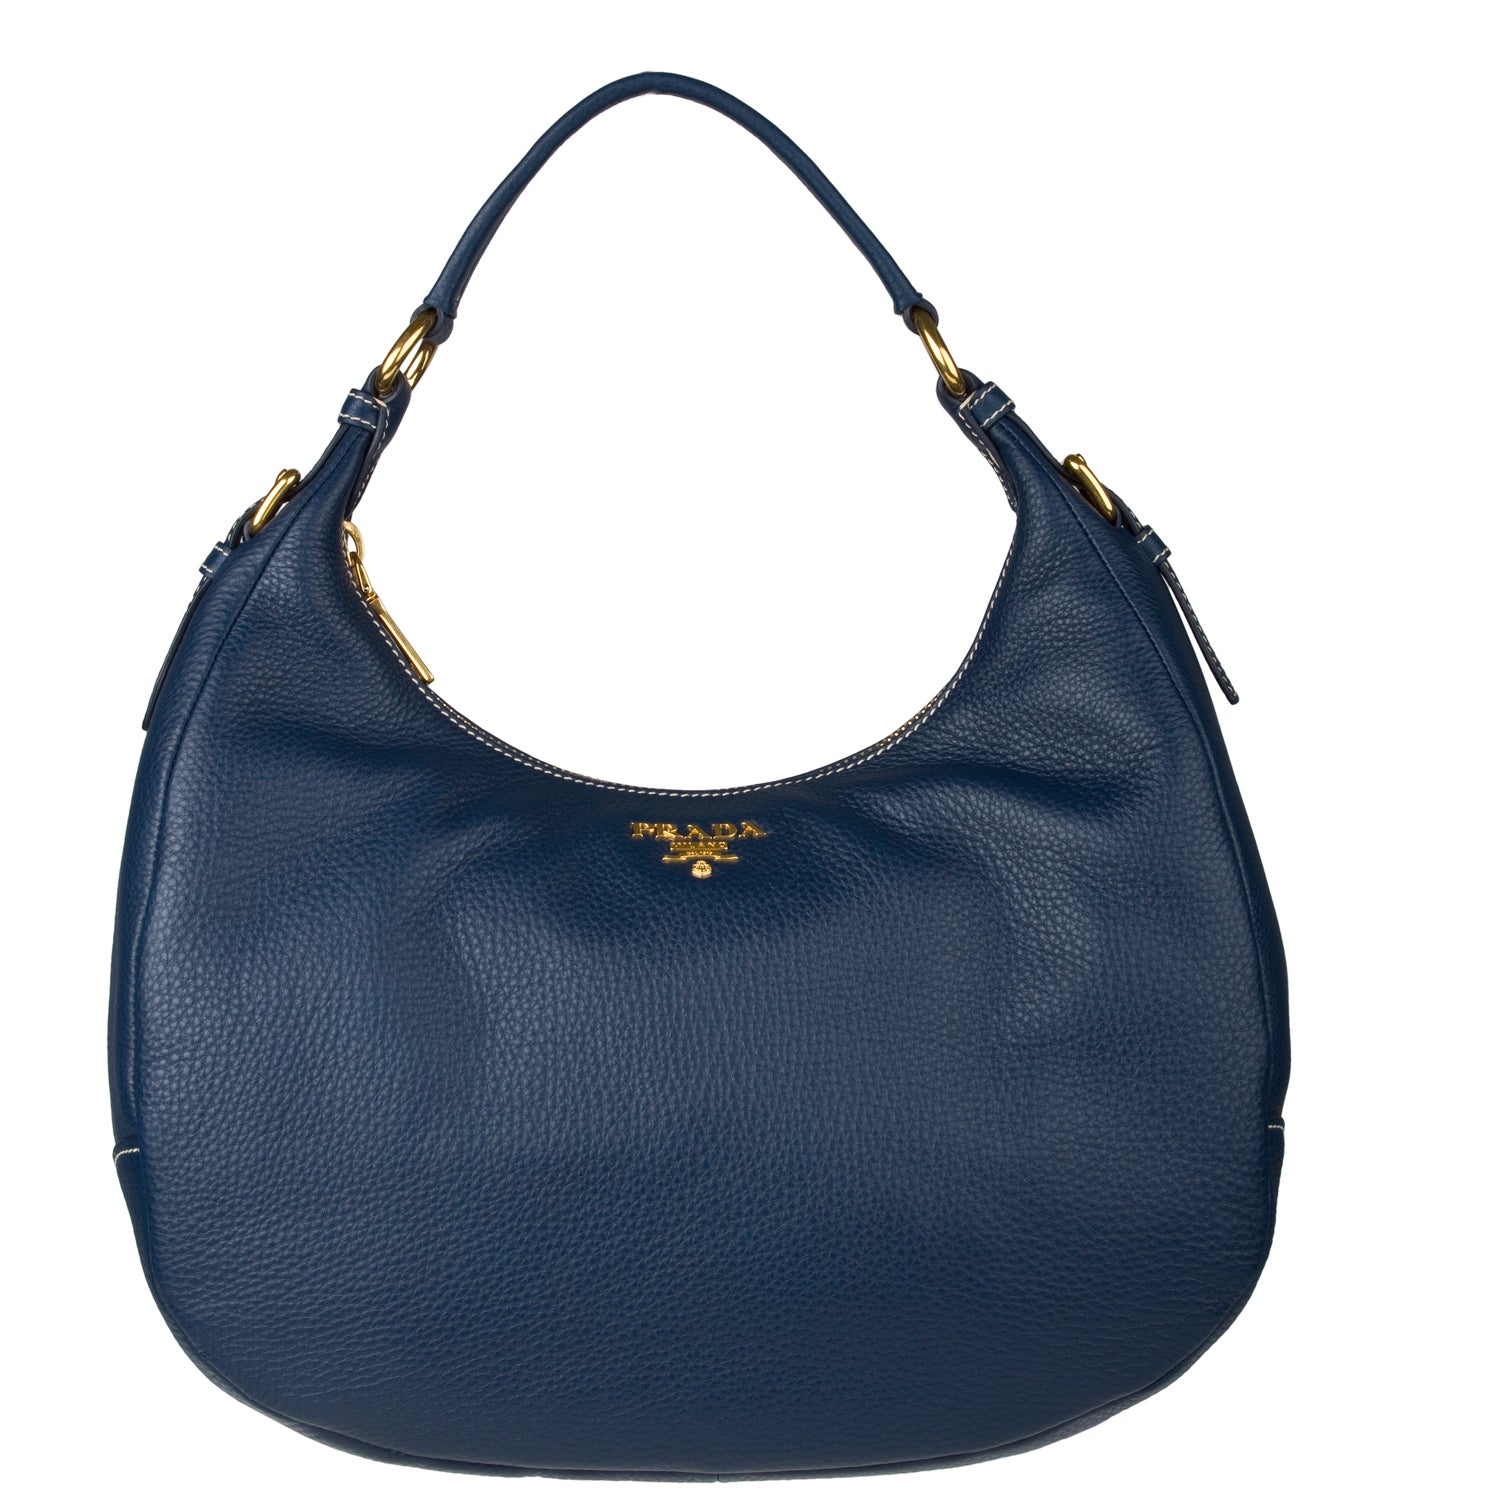 Prada Navy Blue Leather Hobo Handbag - Free Shipping Today ...